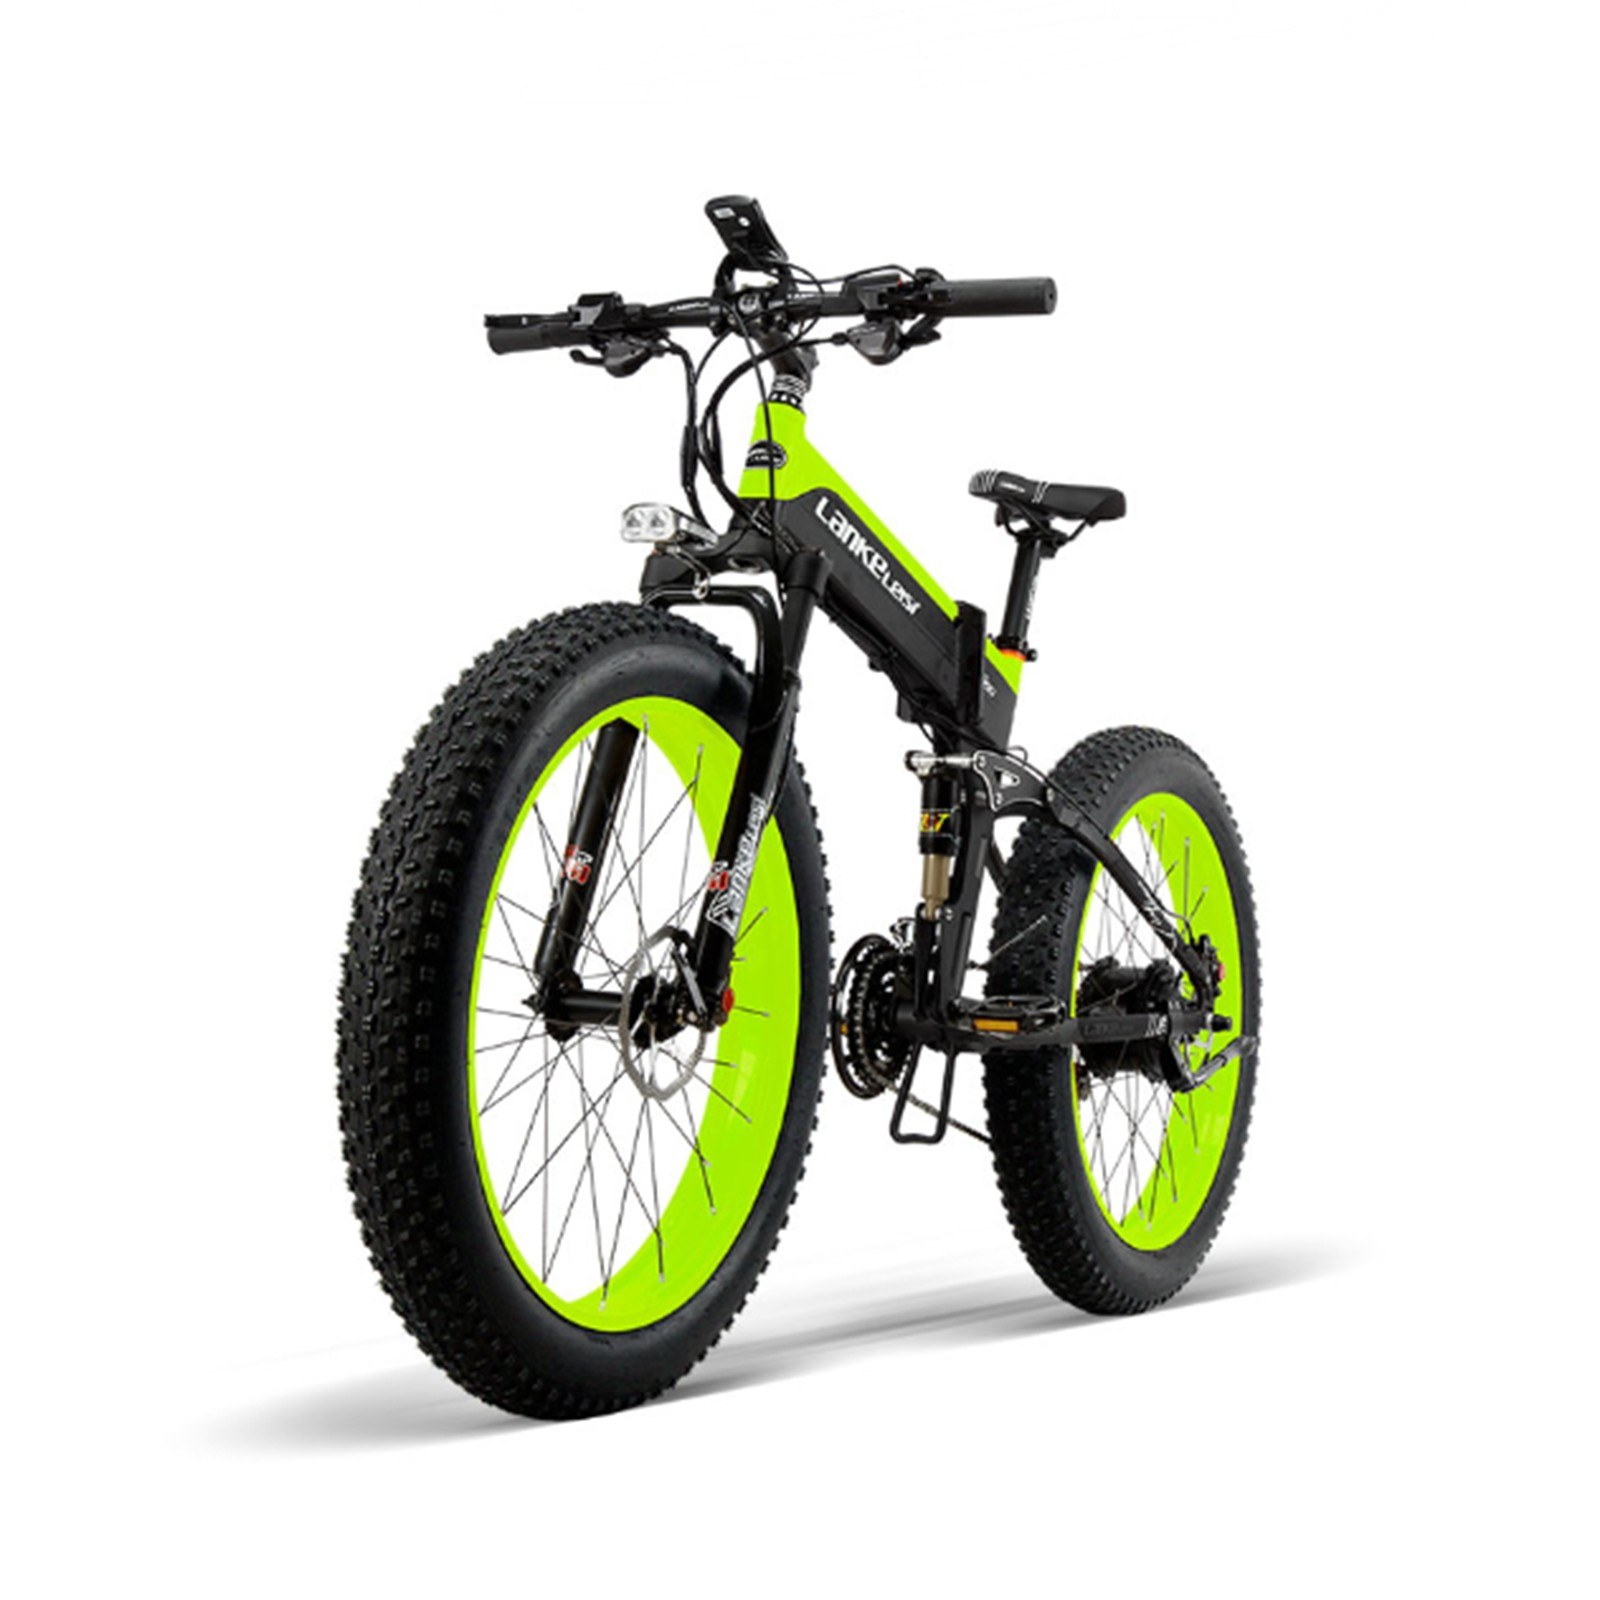 tomtop.com - 41% OFF LANKELEISI XT750PLUS1000W 26 Inch Folding Power Assist Electric Bike, Limited Offers €1189.99